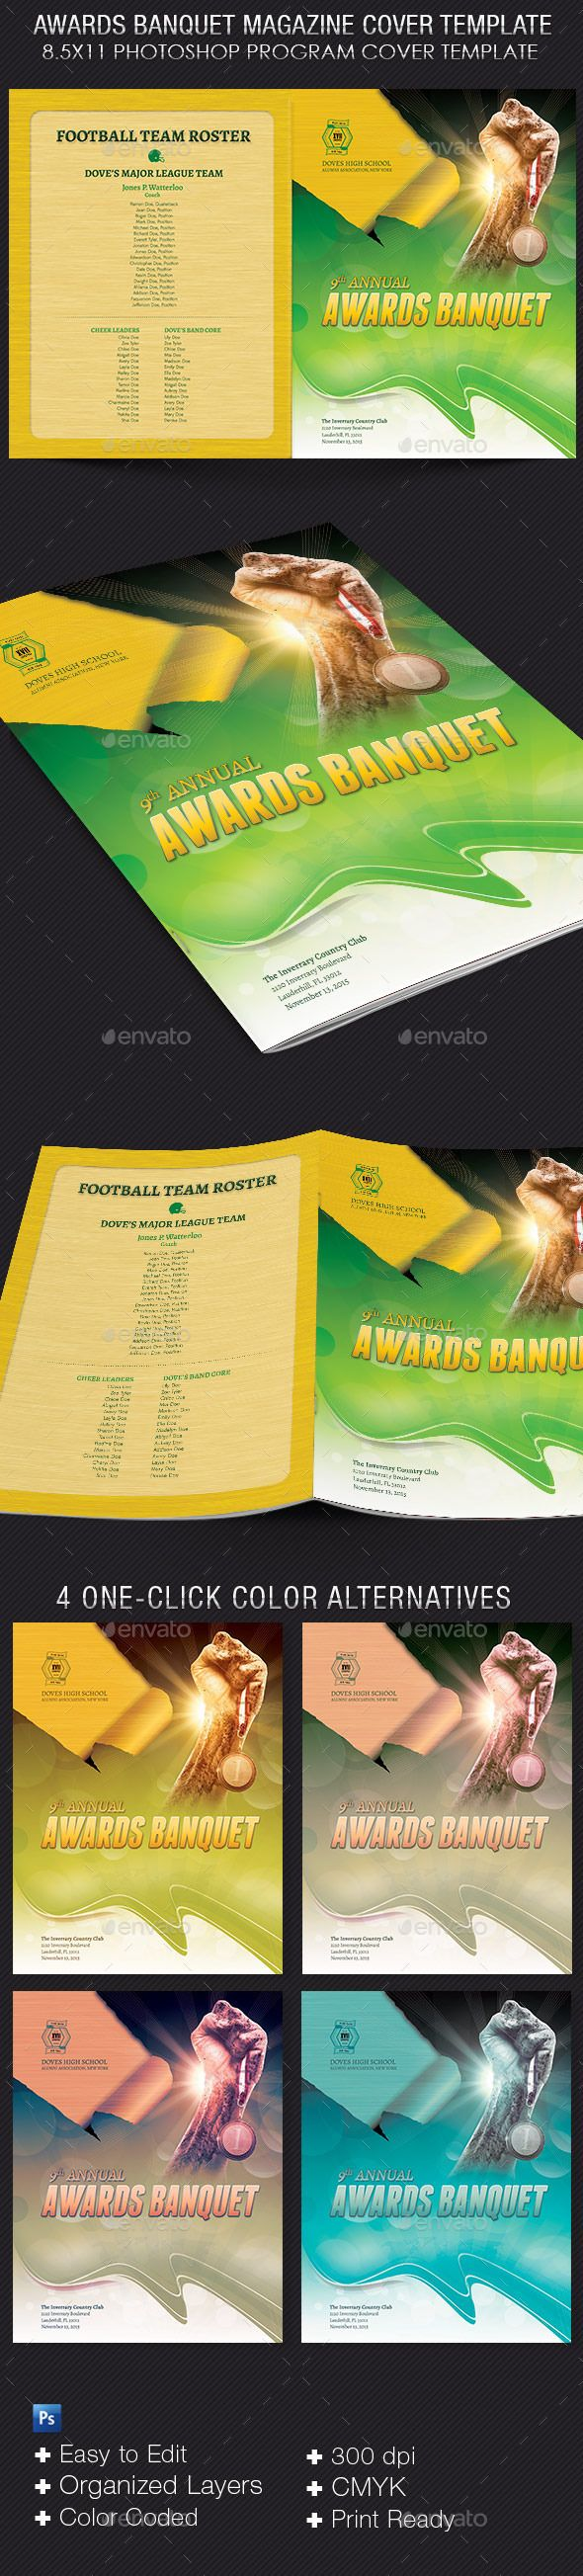 high school football program template - awards banquet magazine cover template best magazine